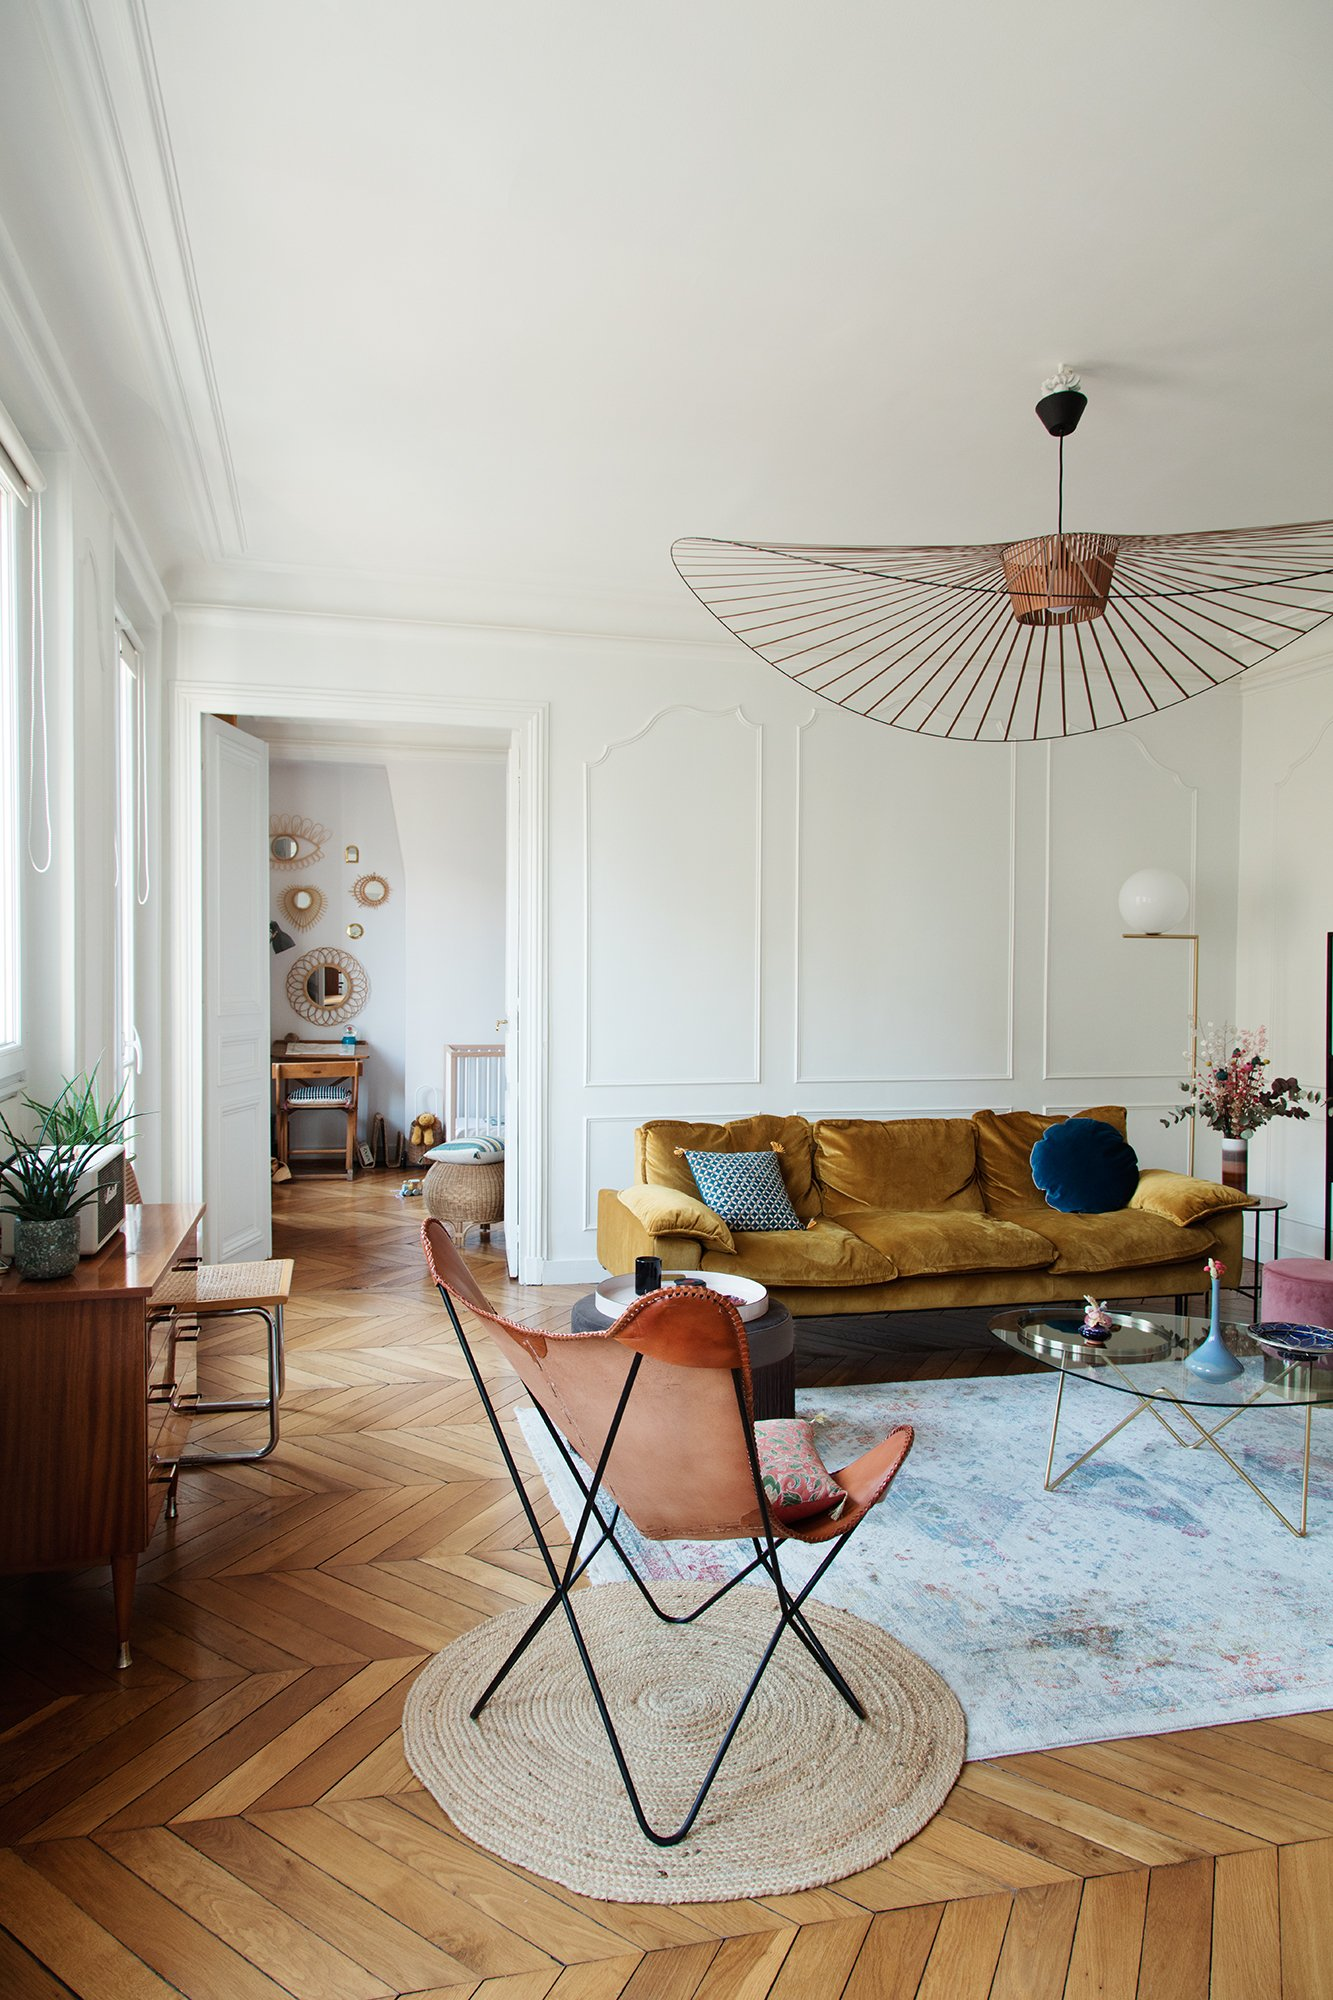 THe Nordroom - A Stylish Haussmannian Apartment in Paris 1.jpg